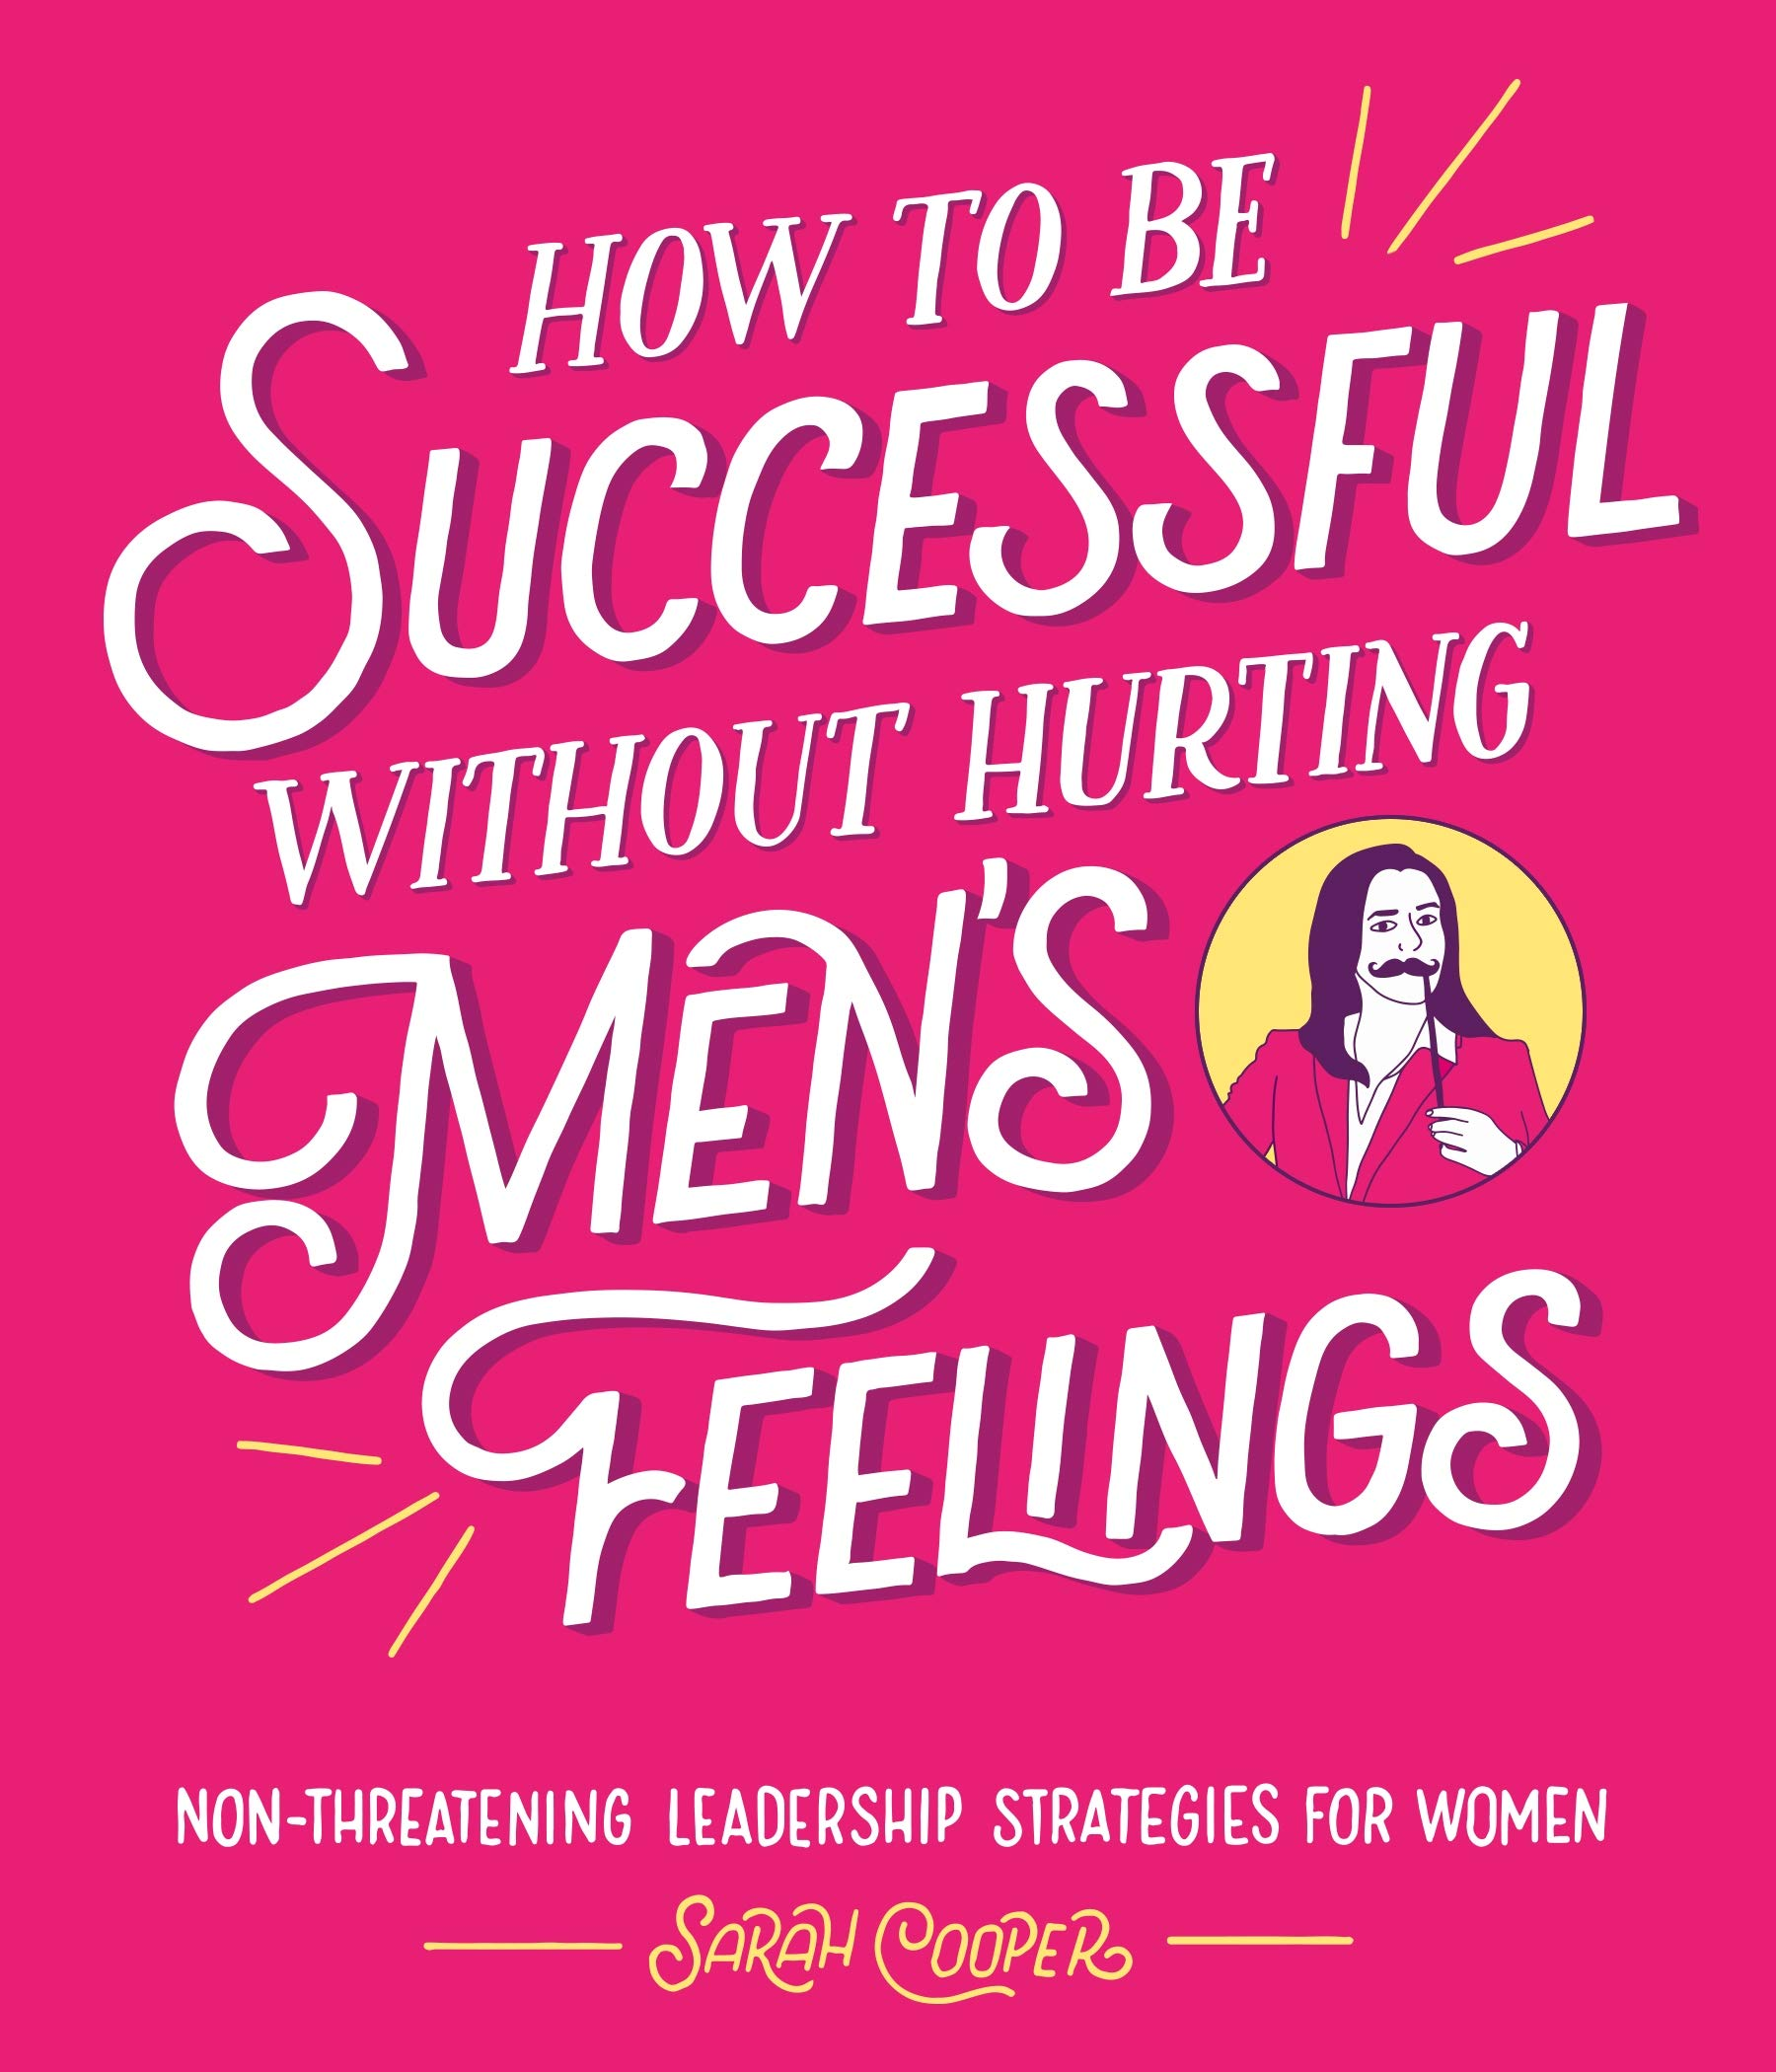 How to Be Successful Without Hurting Men's Feelings thumbnail